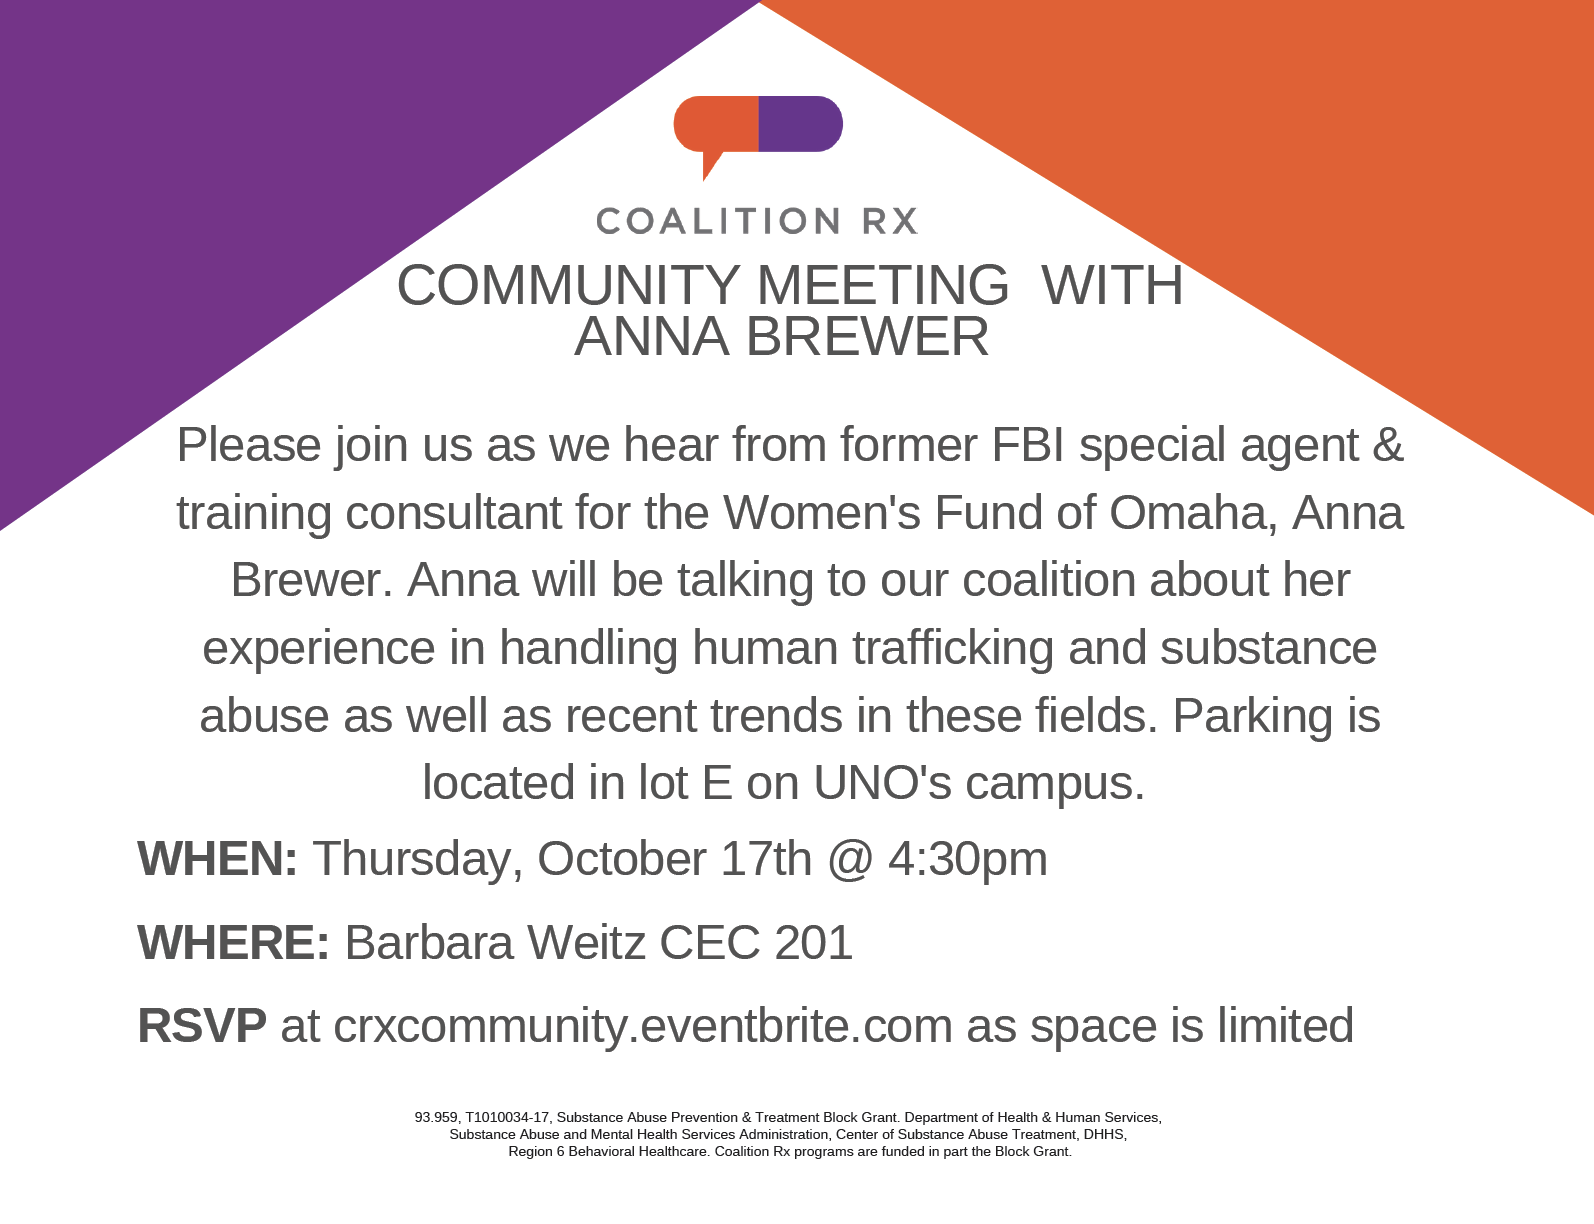 Community Meeting with Anna Brewer